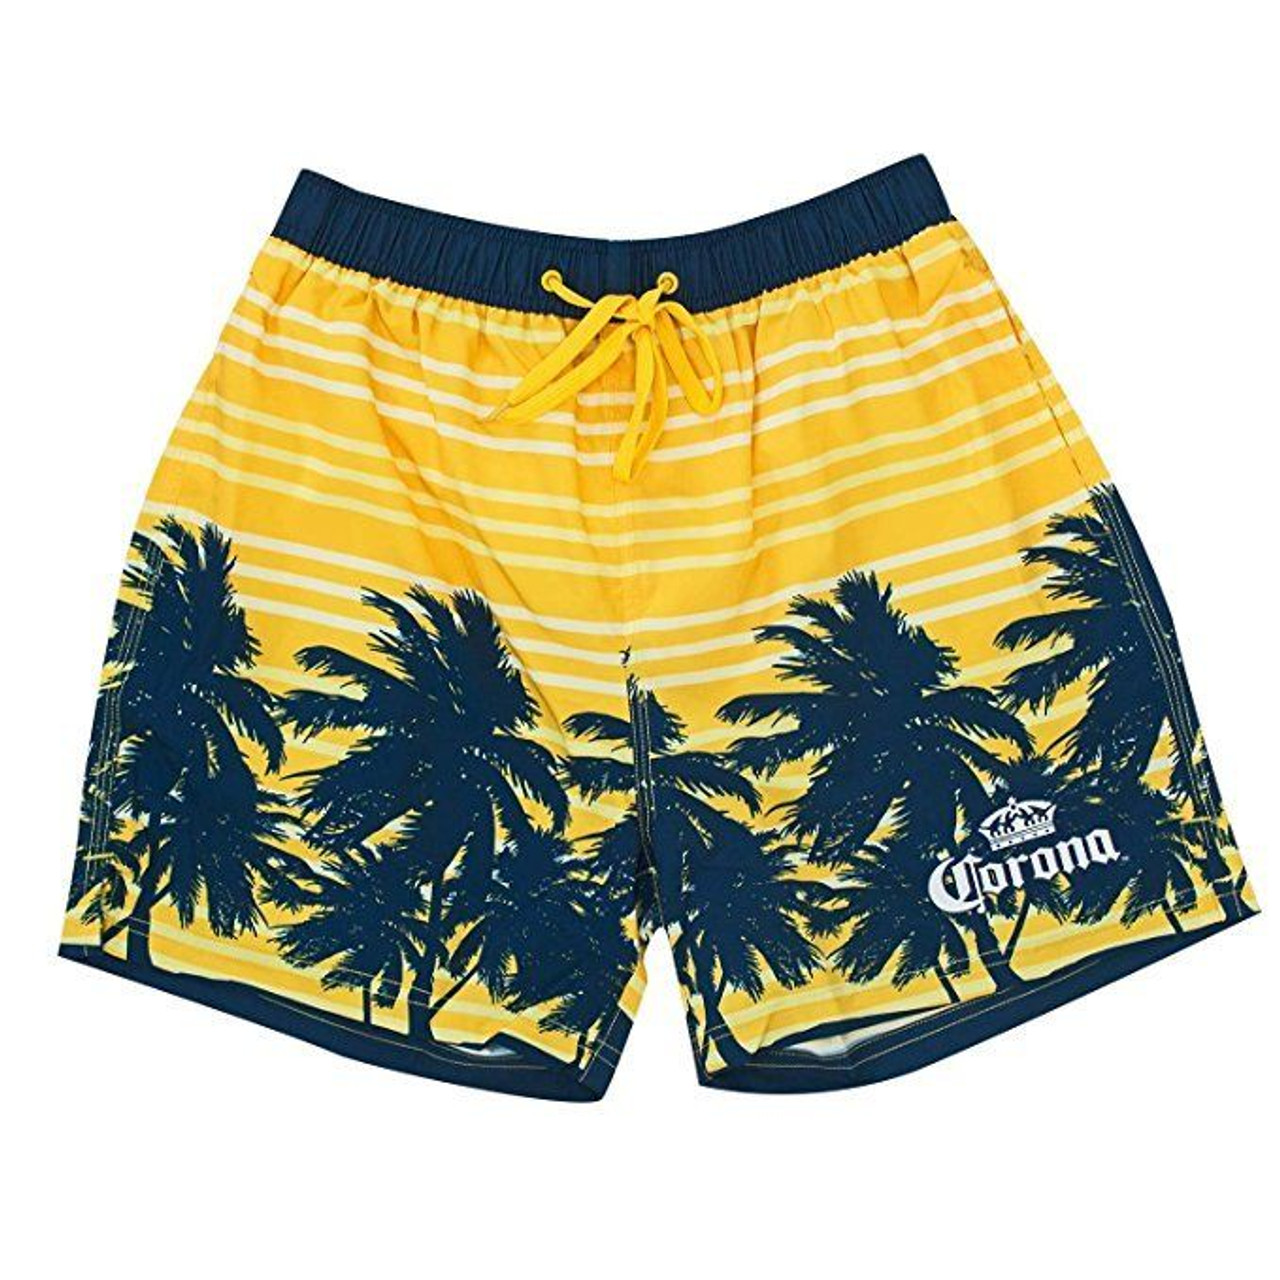 072c869ec7 Corona Palm Tree Print Stripe Summer Beach Bathing Suit Mens Board Shorts  CMES7 - Fearless Apparel